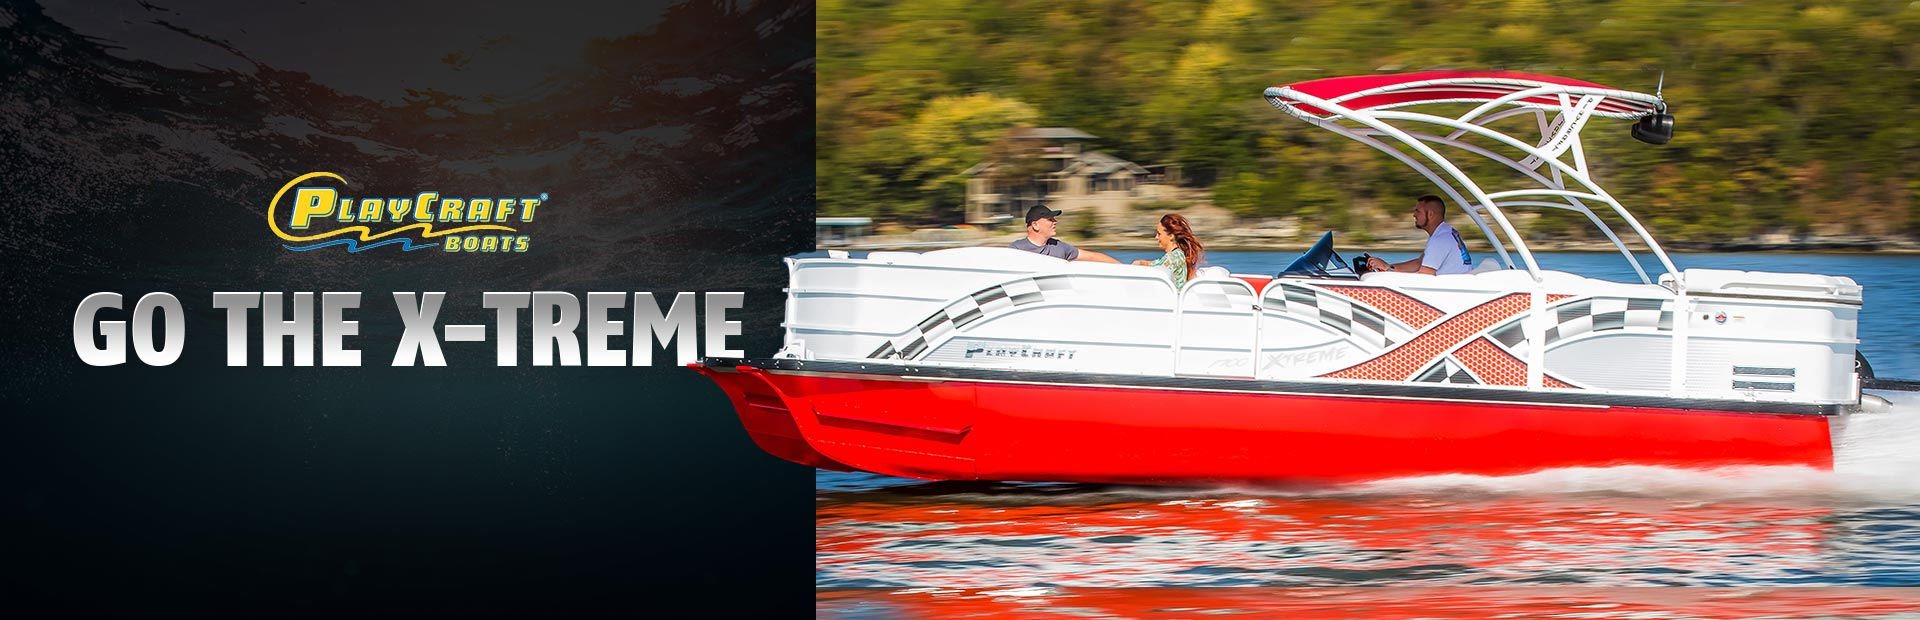 PlayCraft Boats: Go the X-Treme